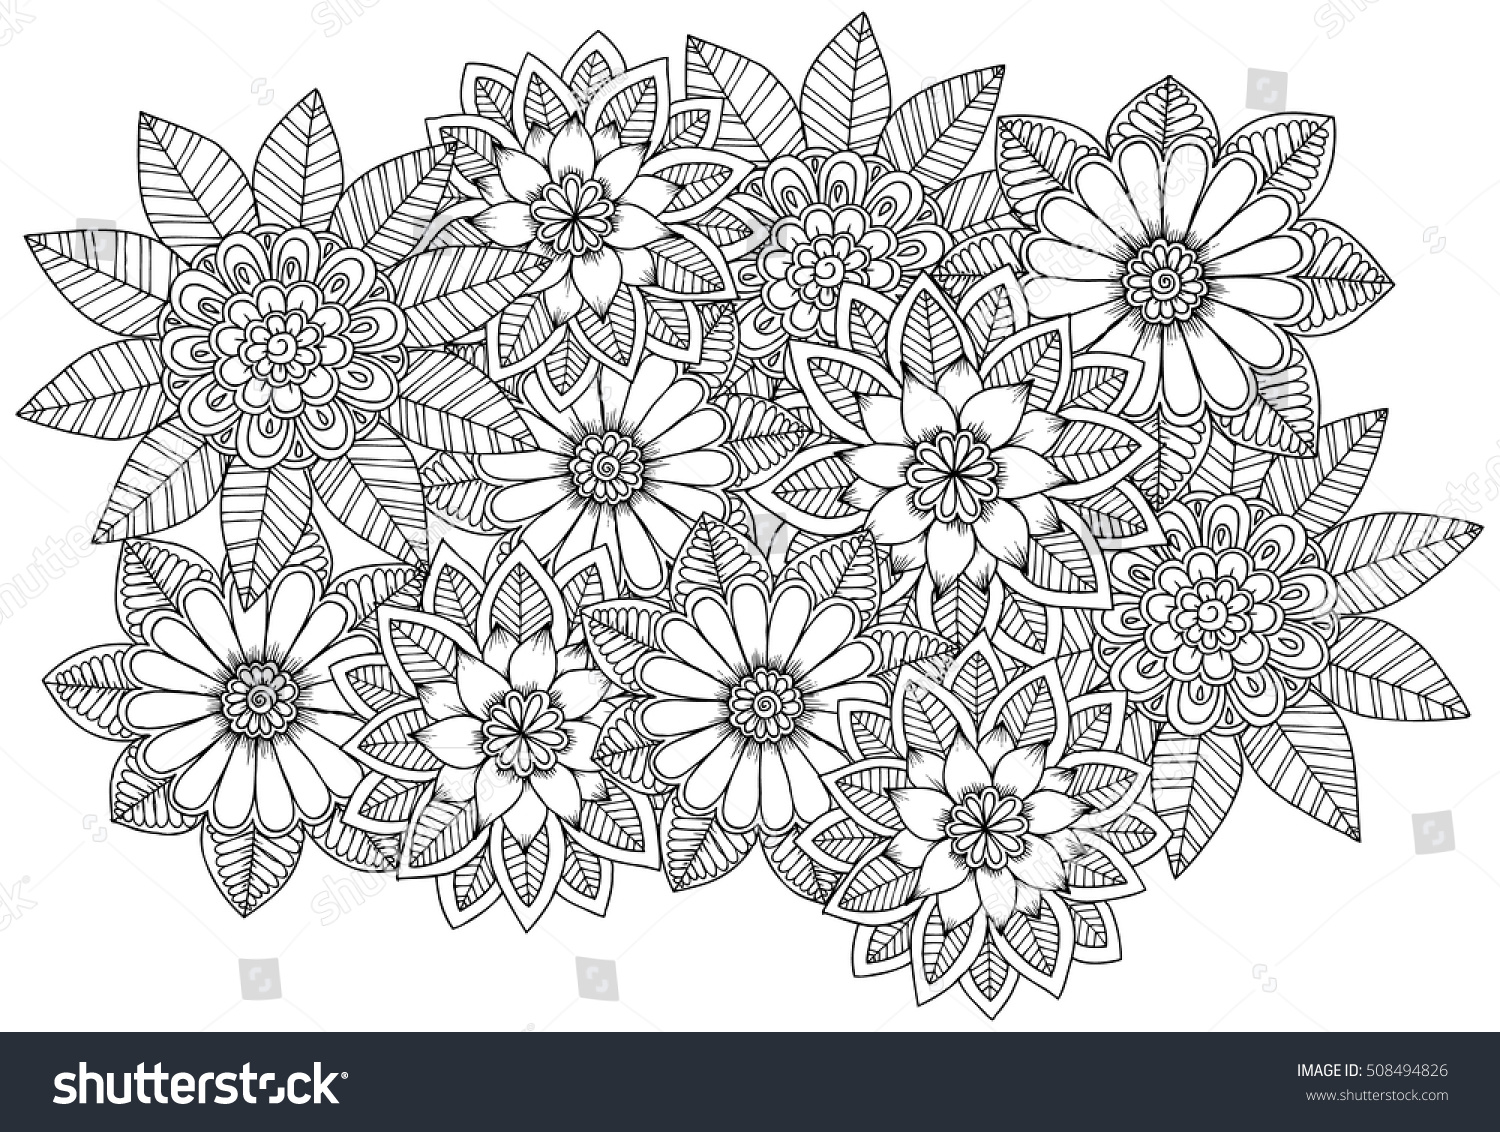 black white flower pattern coloring doodle stock vector 508494826